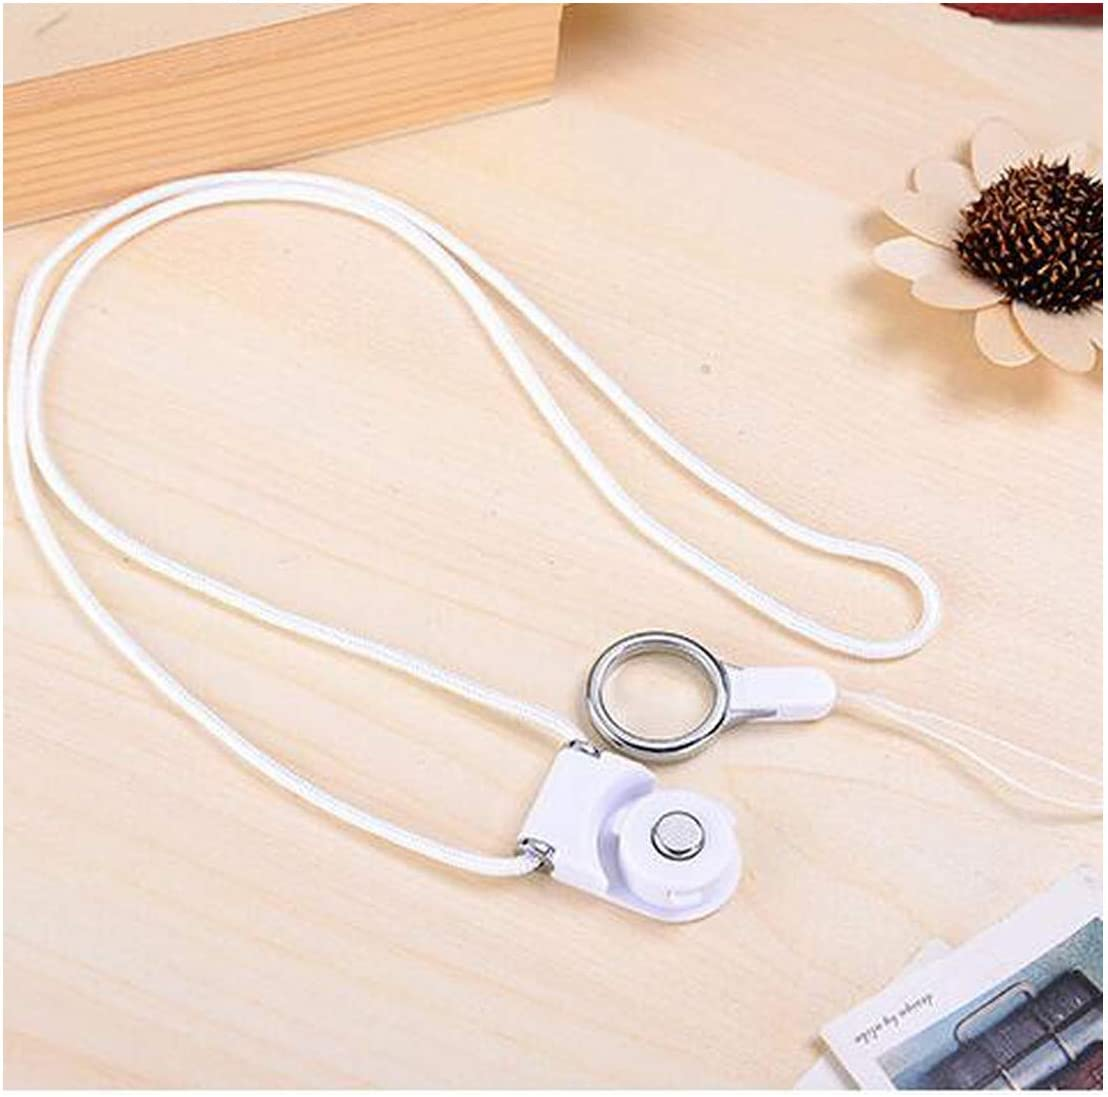 2Pcs//Lot Useful Mobile PhoNeck Lanyard Cords Strap Case for Mate 20 Honor V8 Hang Rope ID Pass Card Camera Mp3 Holder,White